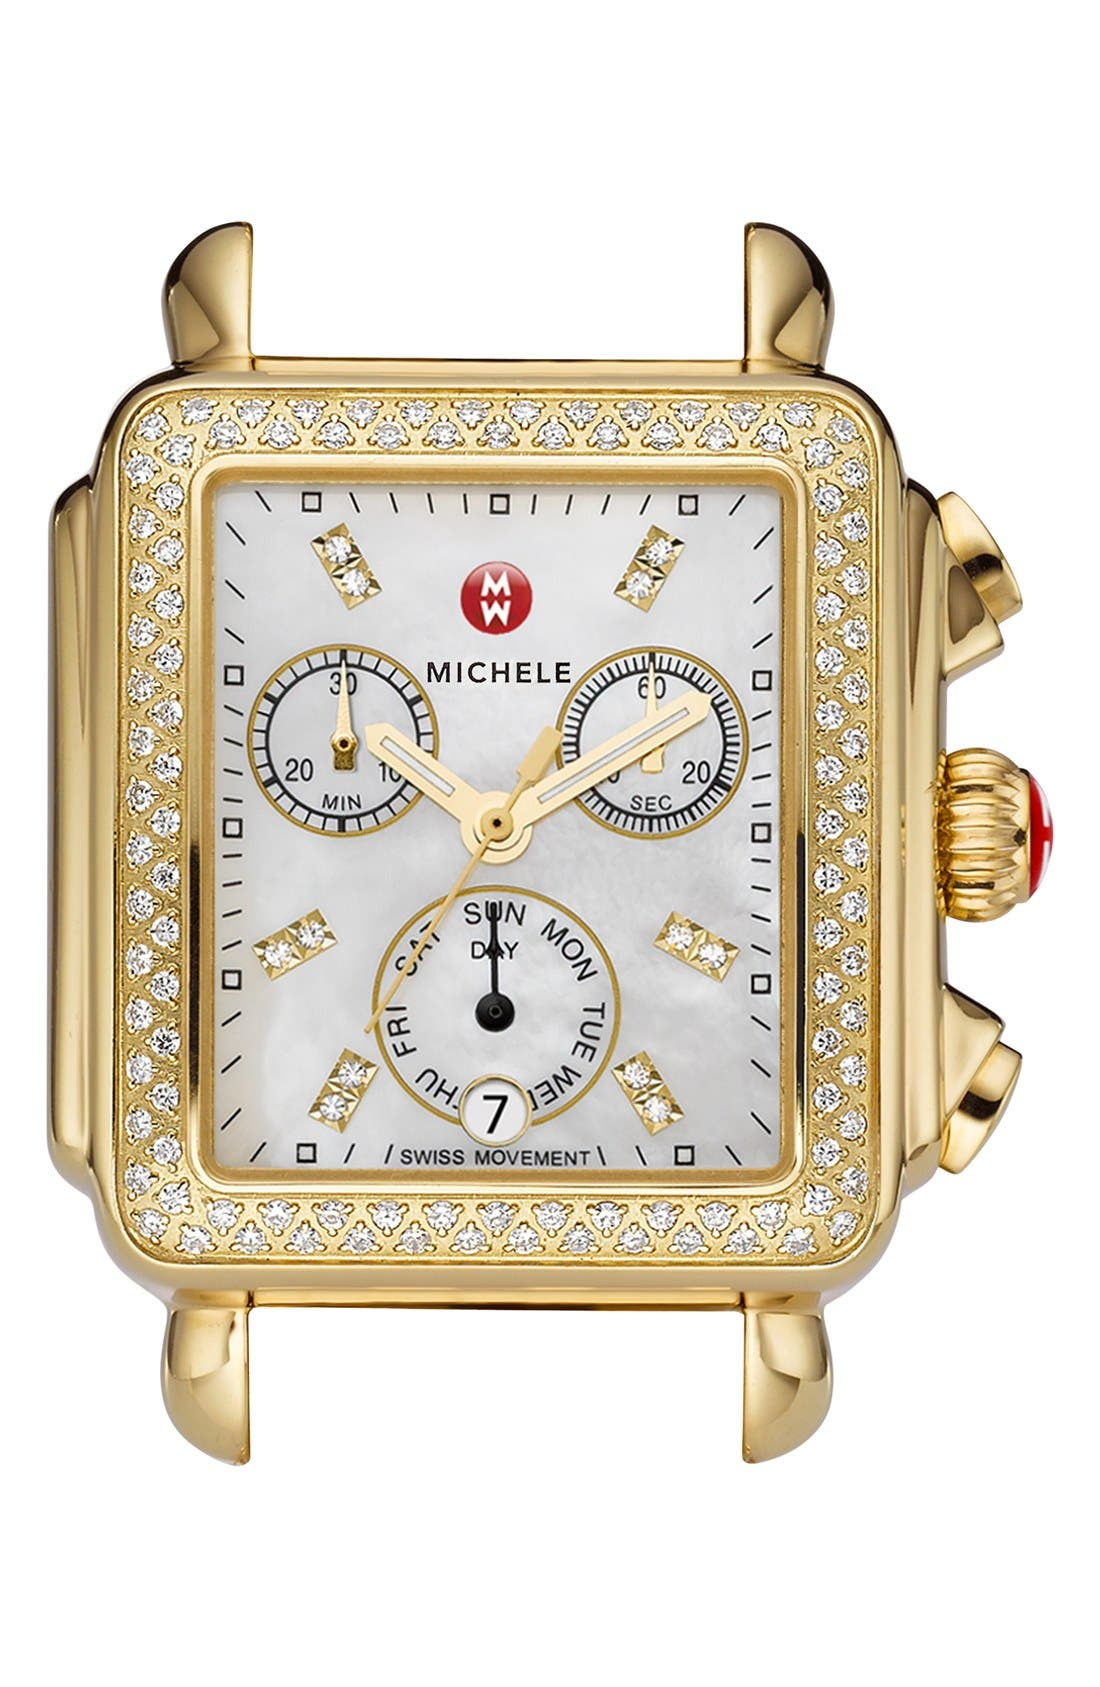 MICHELE, Deco Diamond Diamond Dial Gold Plated Watch Case, 33mm x 35mm, Main thumbnail 1, color, GOLD